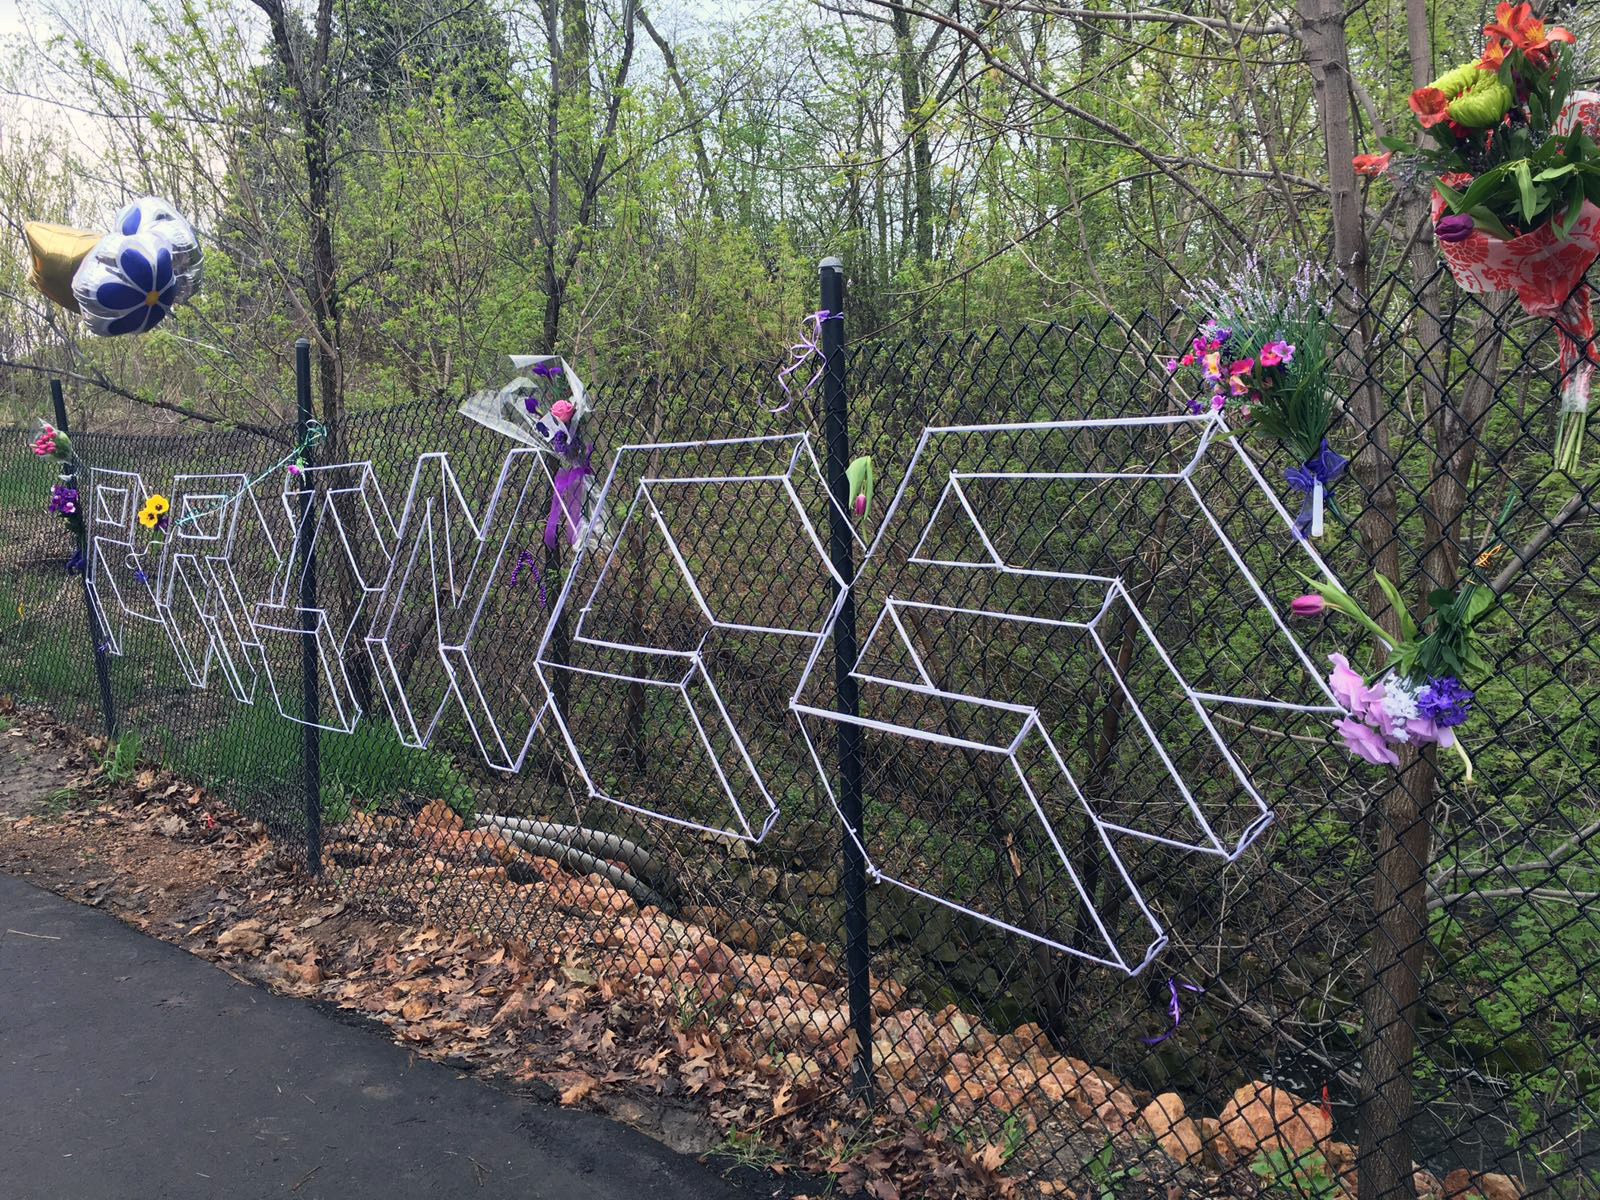 A fan tribute to prince on the chain-link fence outside Paisley Park. Photography: Tara McBride